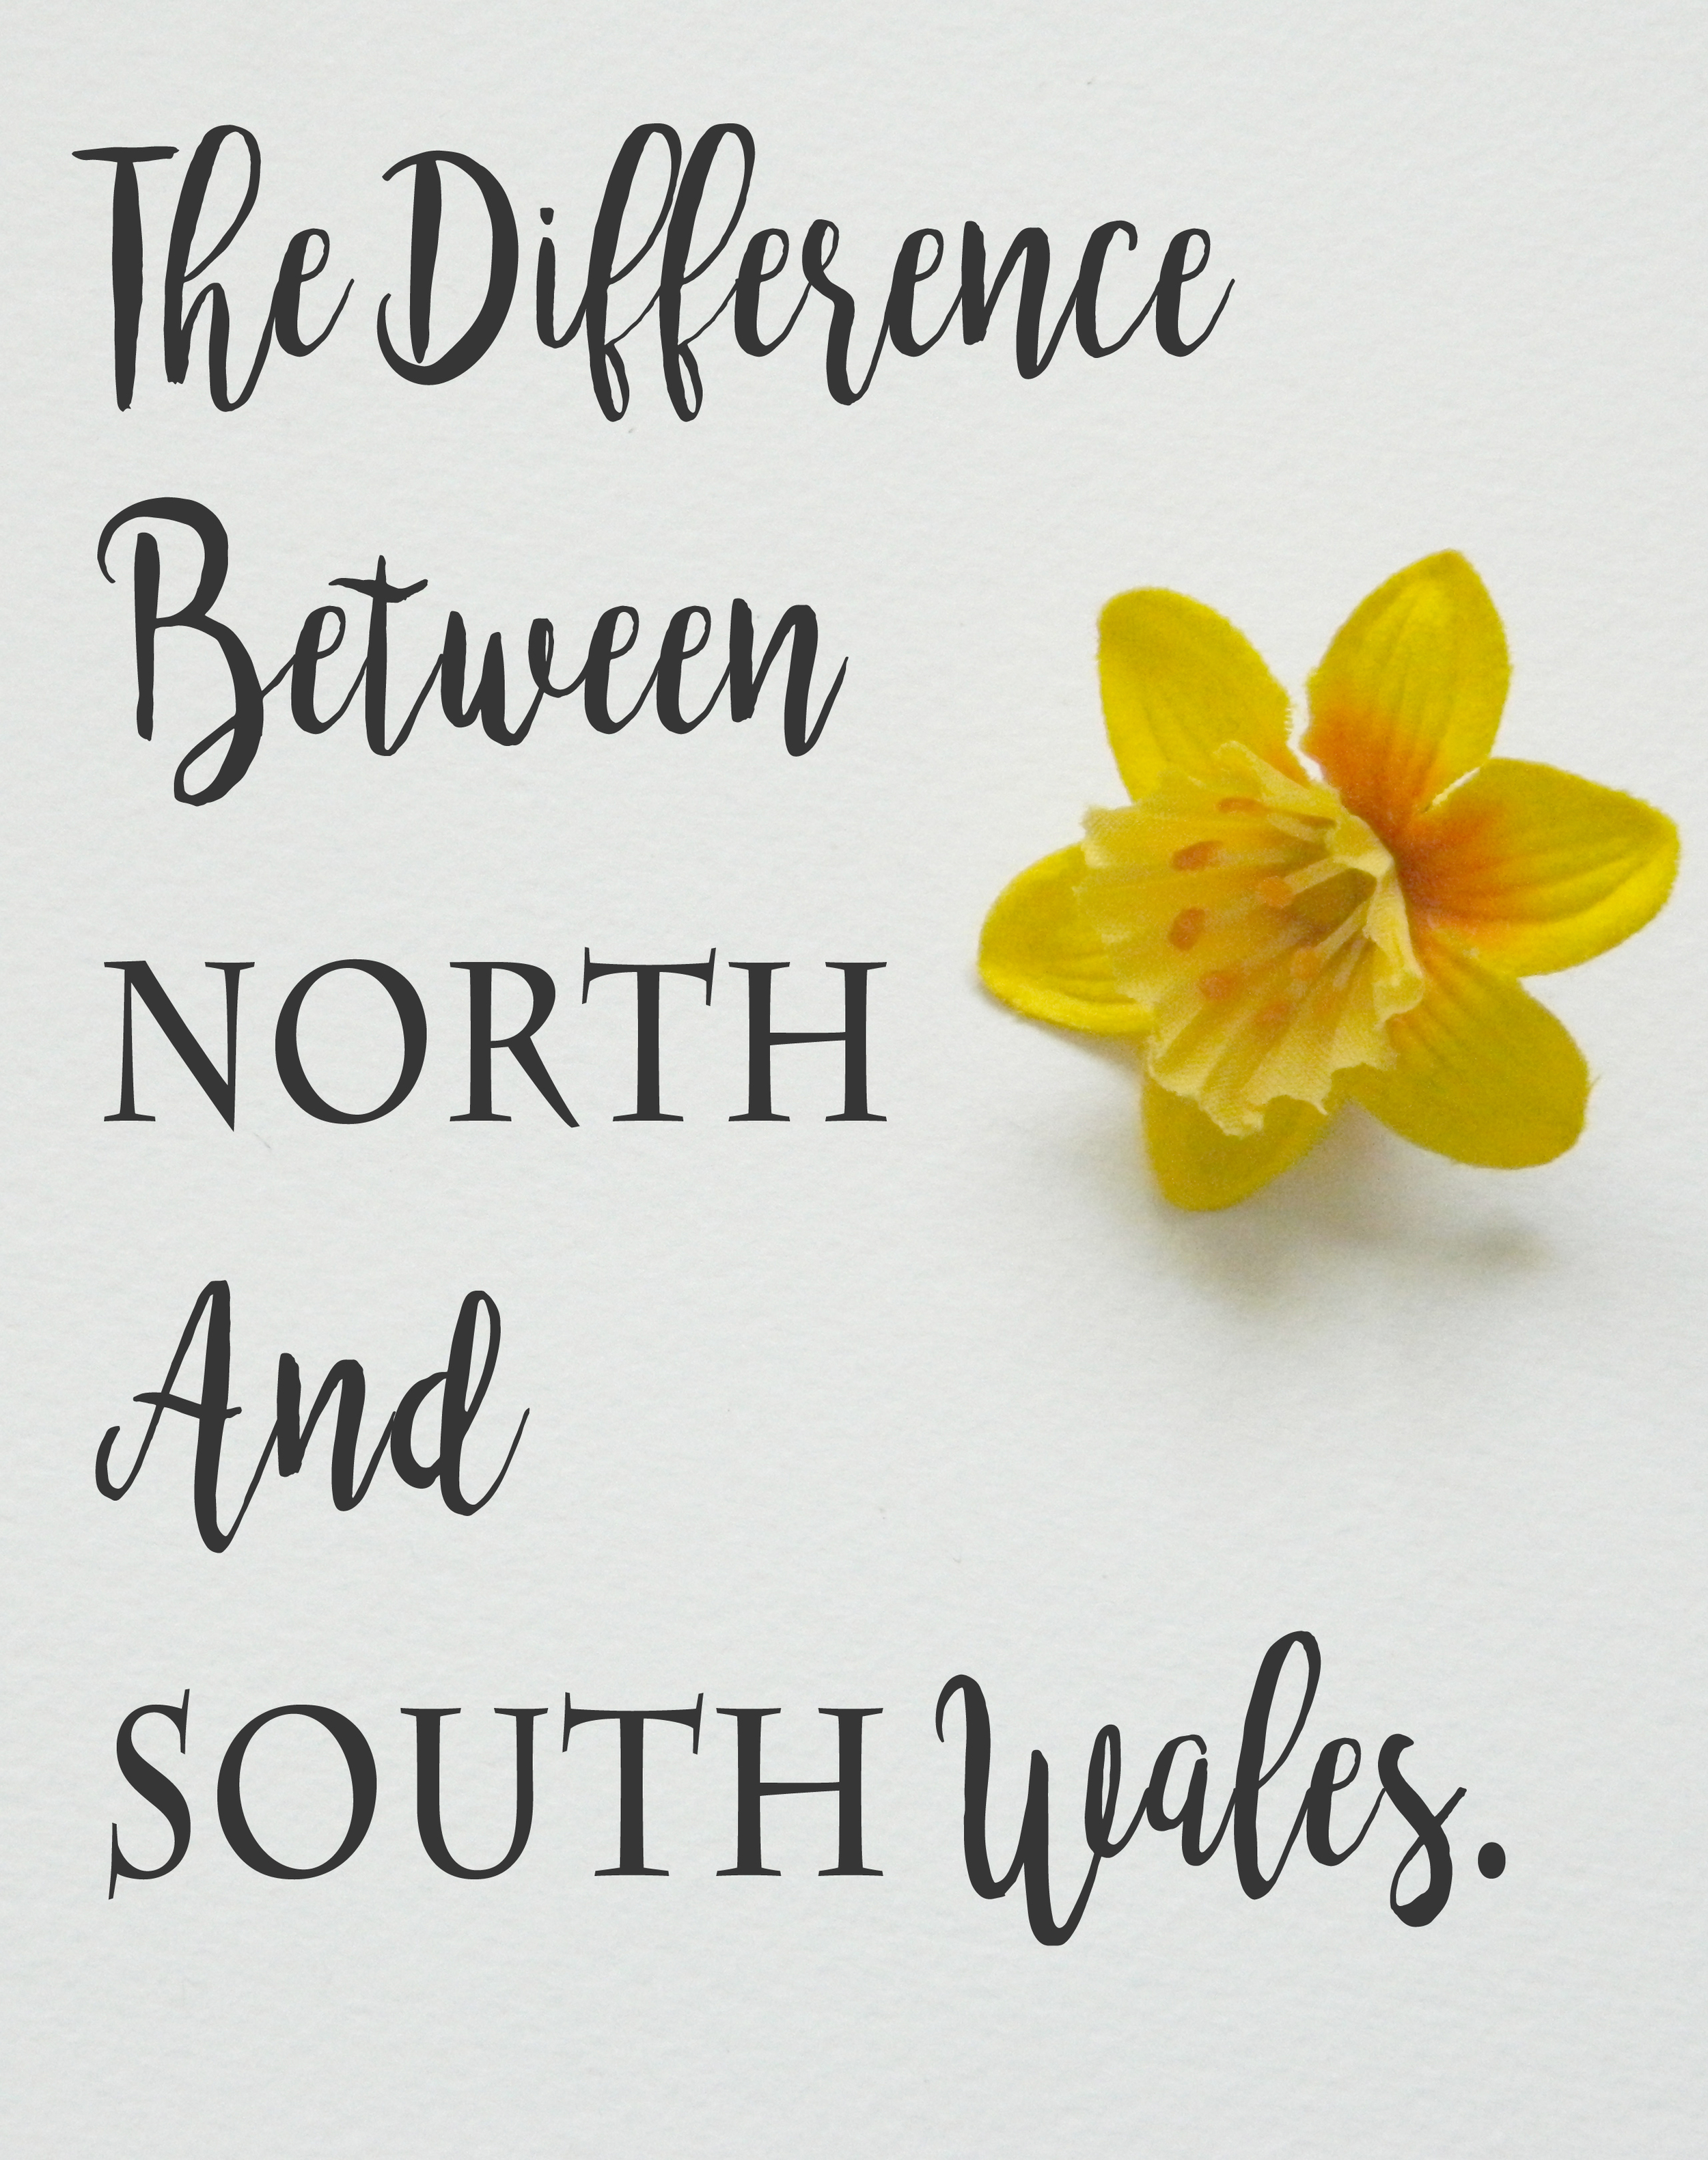 The difference between North & South Wales.